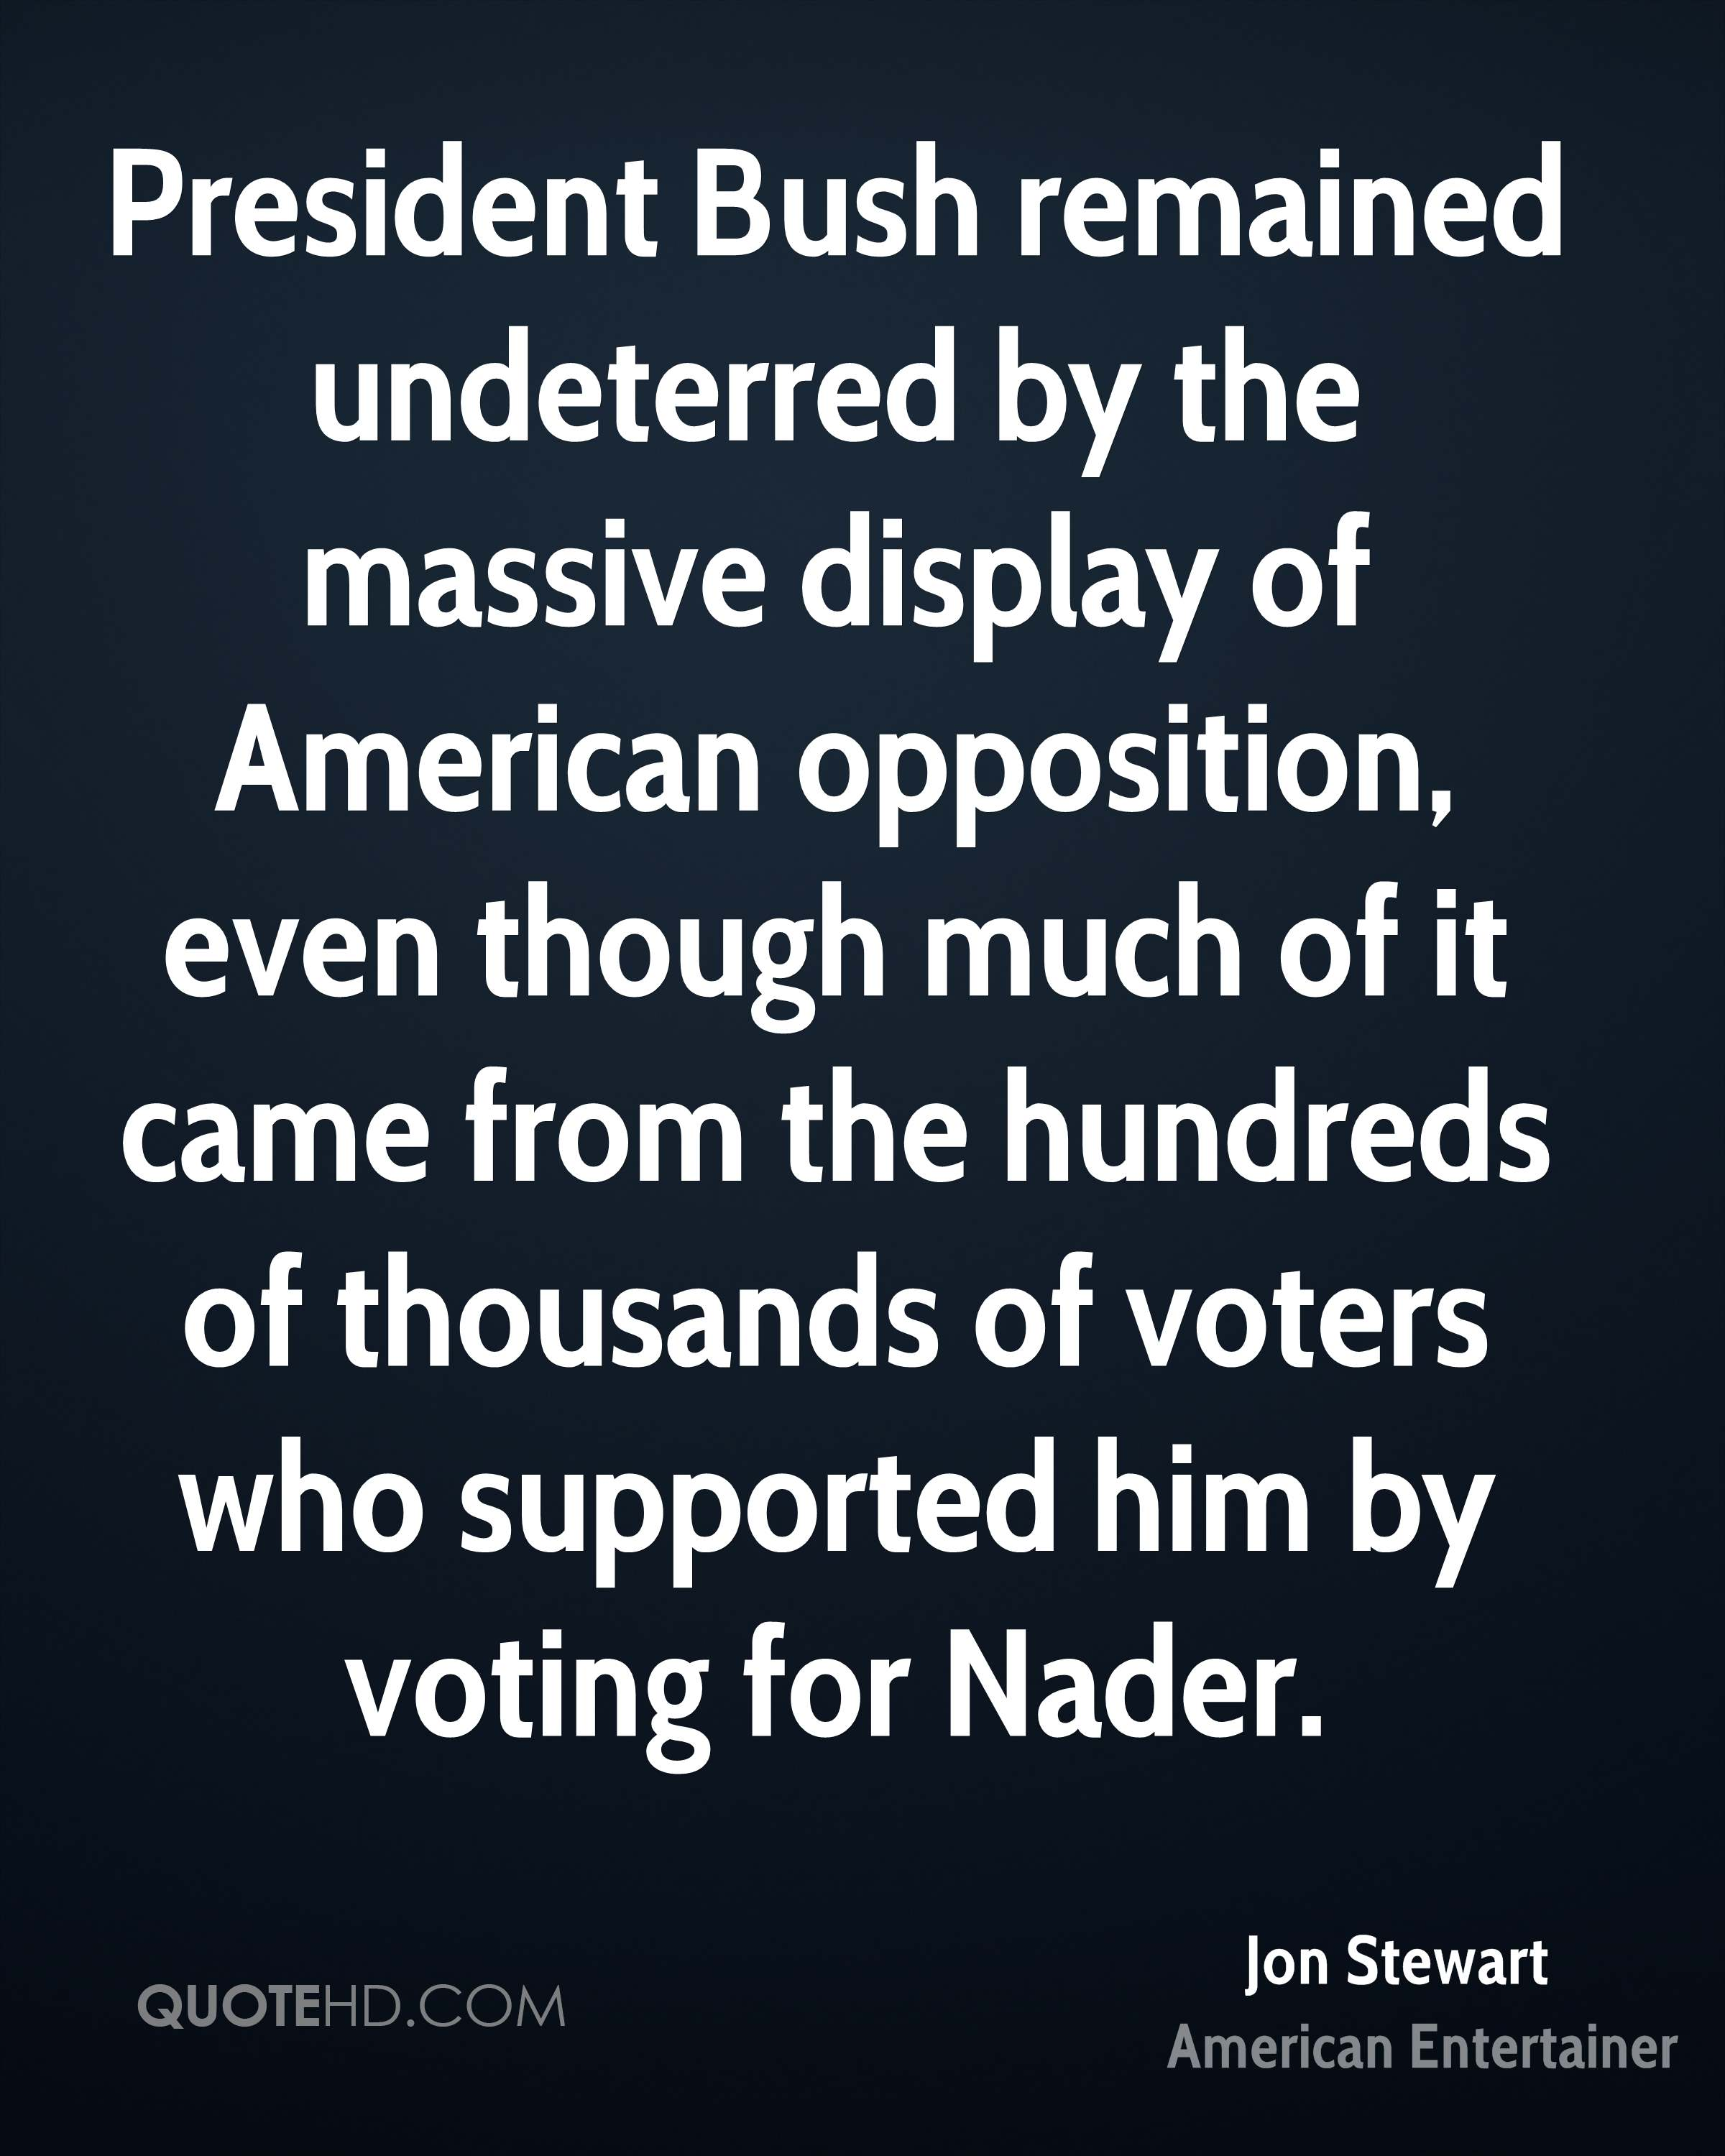 President Bush remained undeterred by the massive display of American opposition, even though much of it came from the hundreds of thousands of voters who supported him by voting for Nader.